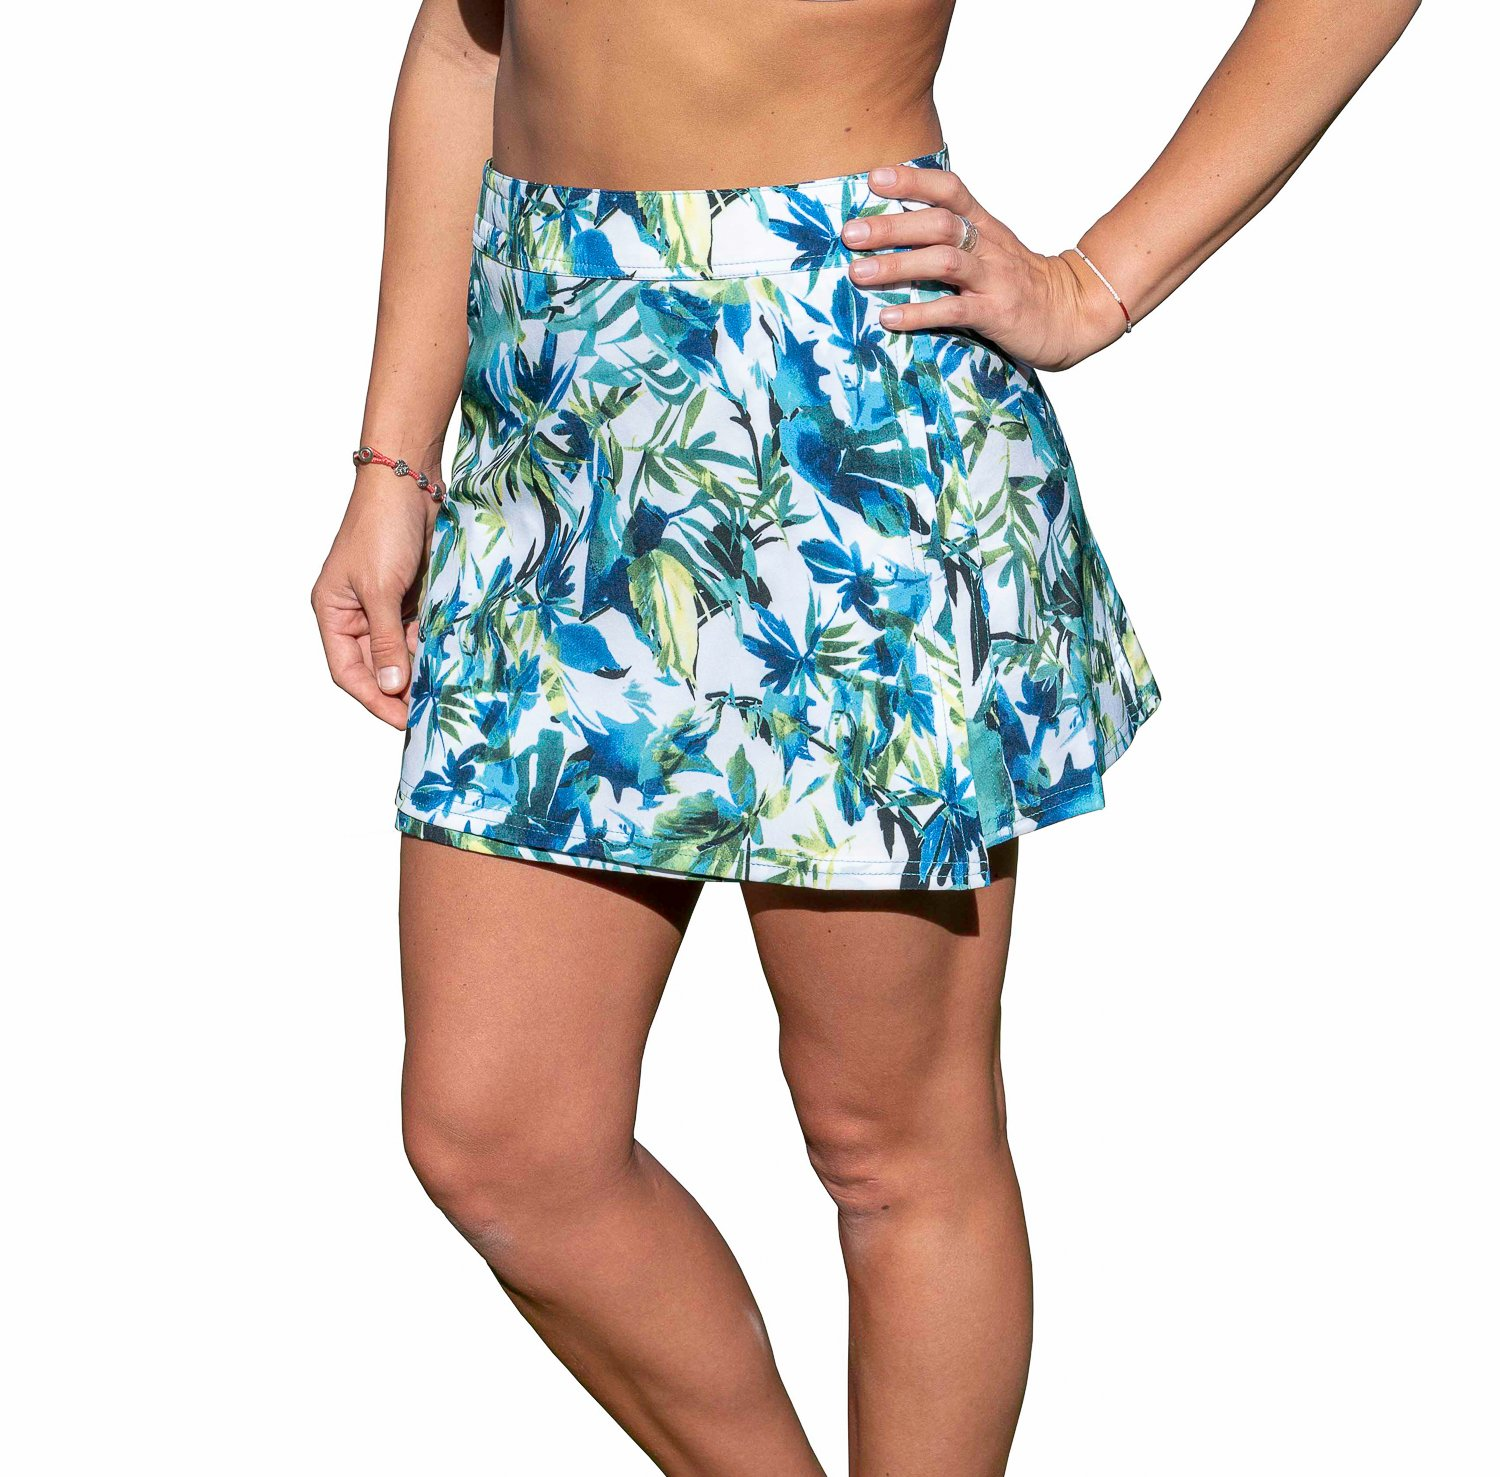 RipSkirt Hawaii - Length 1 - Quick Wrap Athletic Cover-up That Multitasks as The Perfect Travel/Summer Skirt - Big Beach Blue